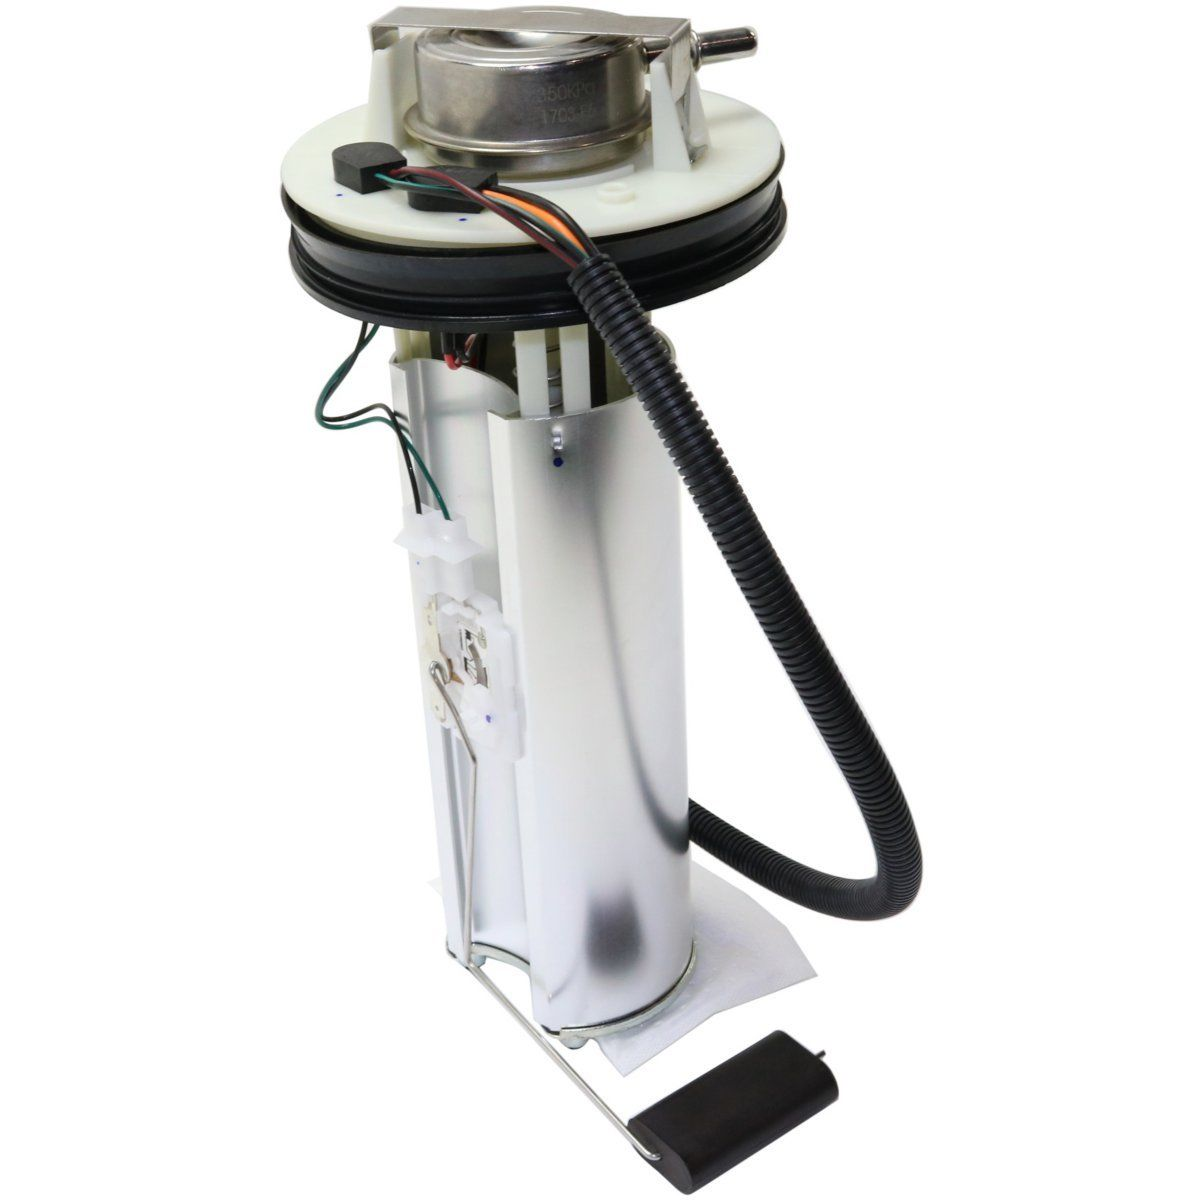 New Fuel Pump Module Assembly Fits 2003 2004 Jeep Wrangler Item Specifications